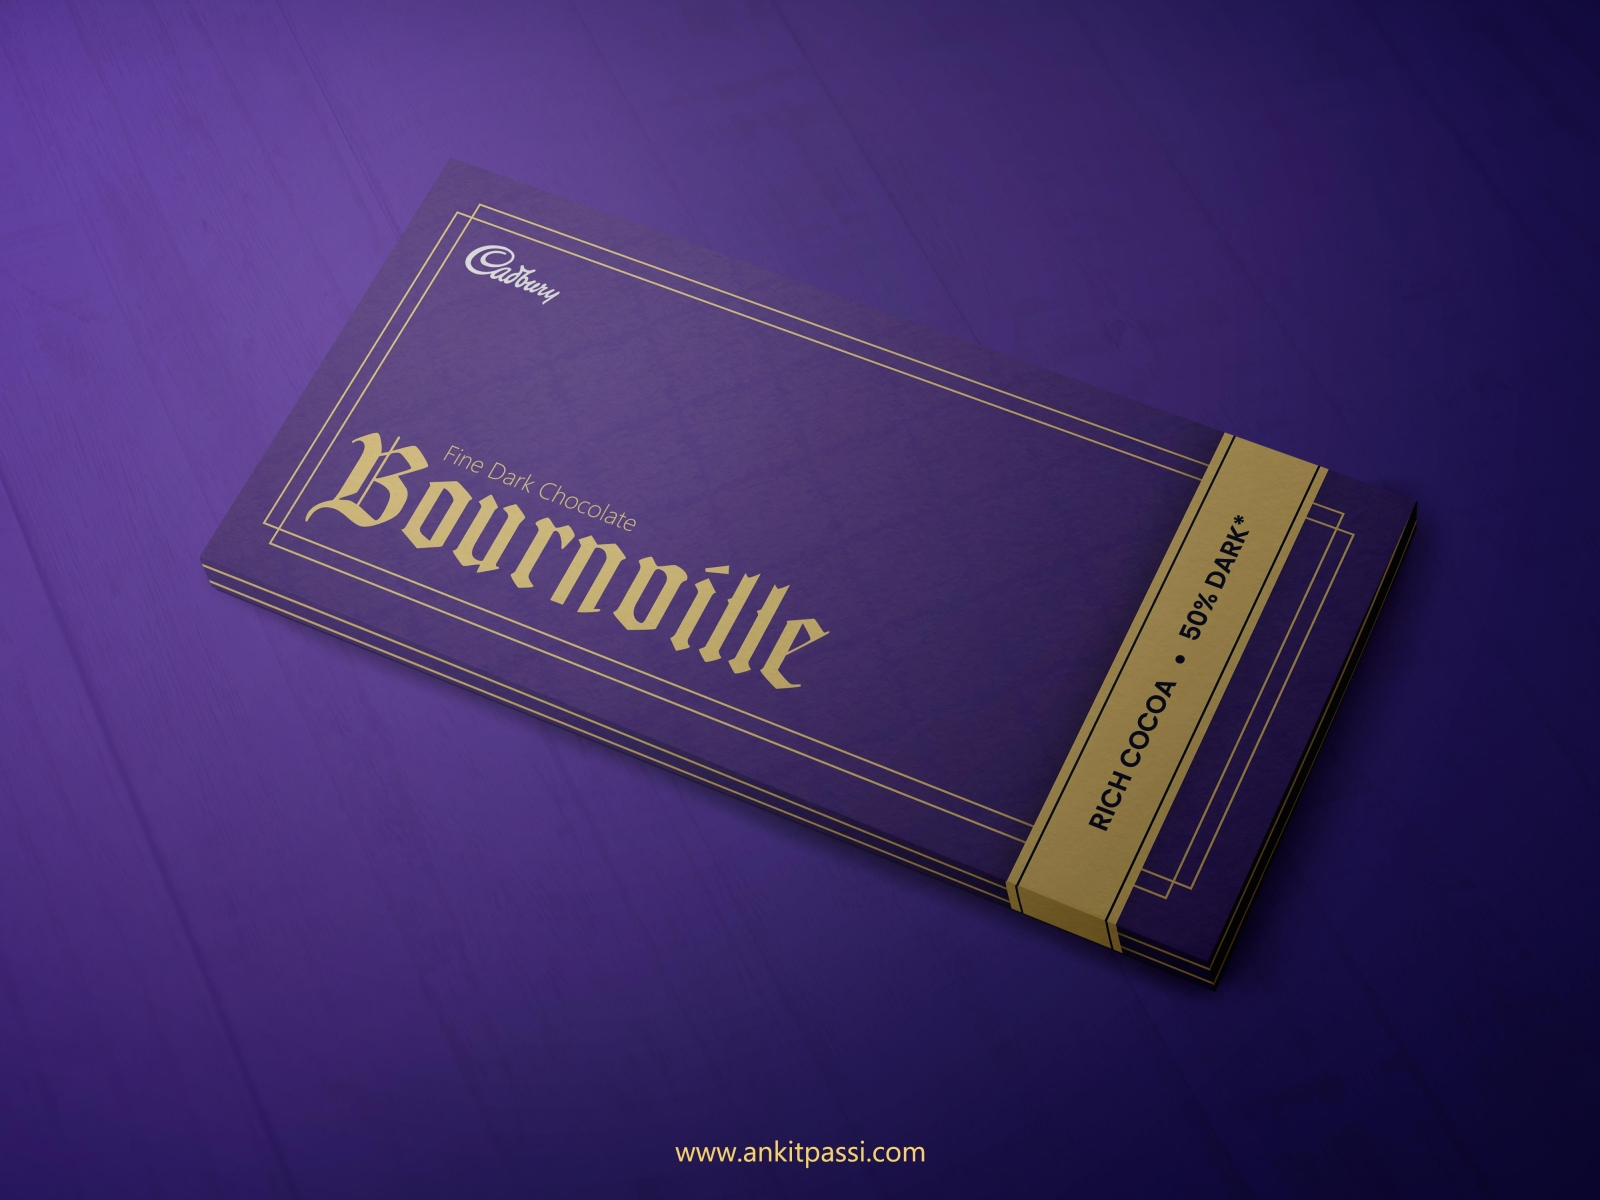 Cadbury's Bournville packaging redesign